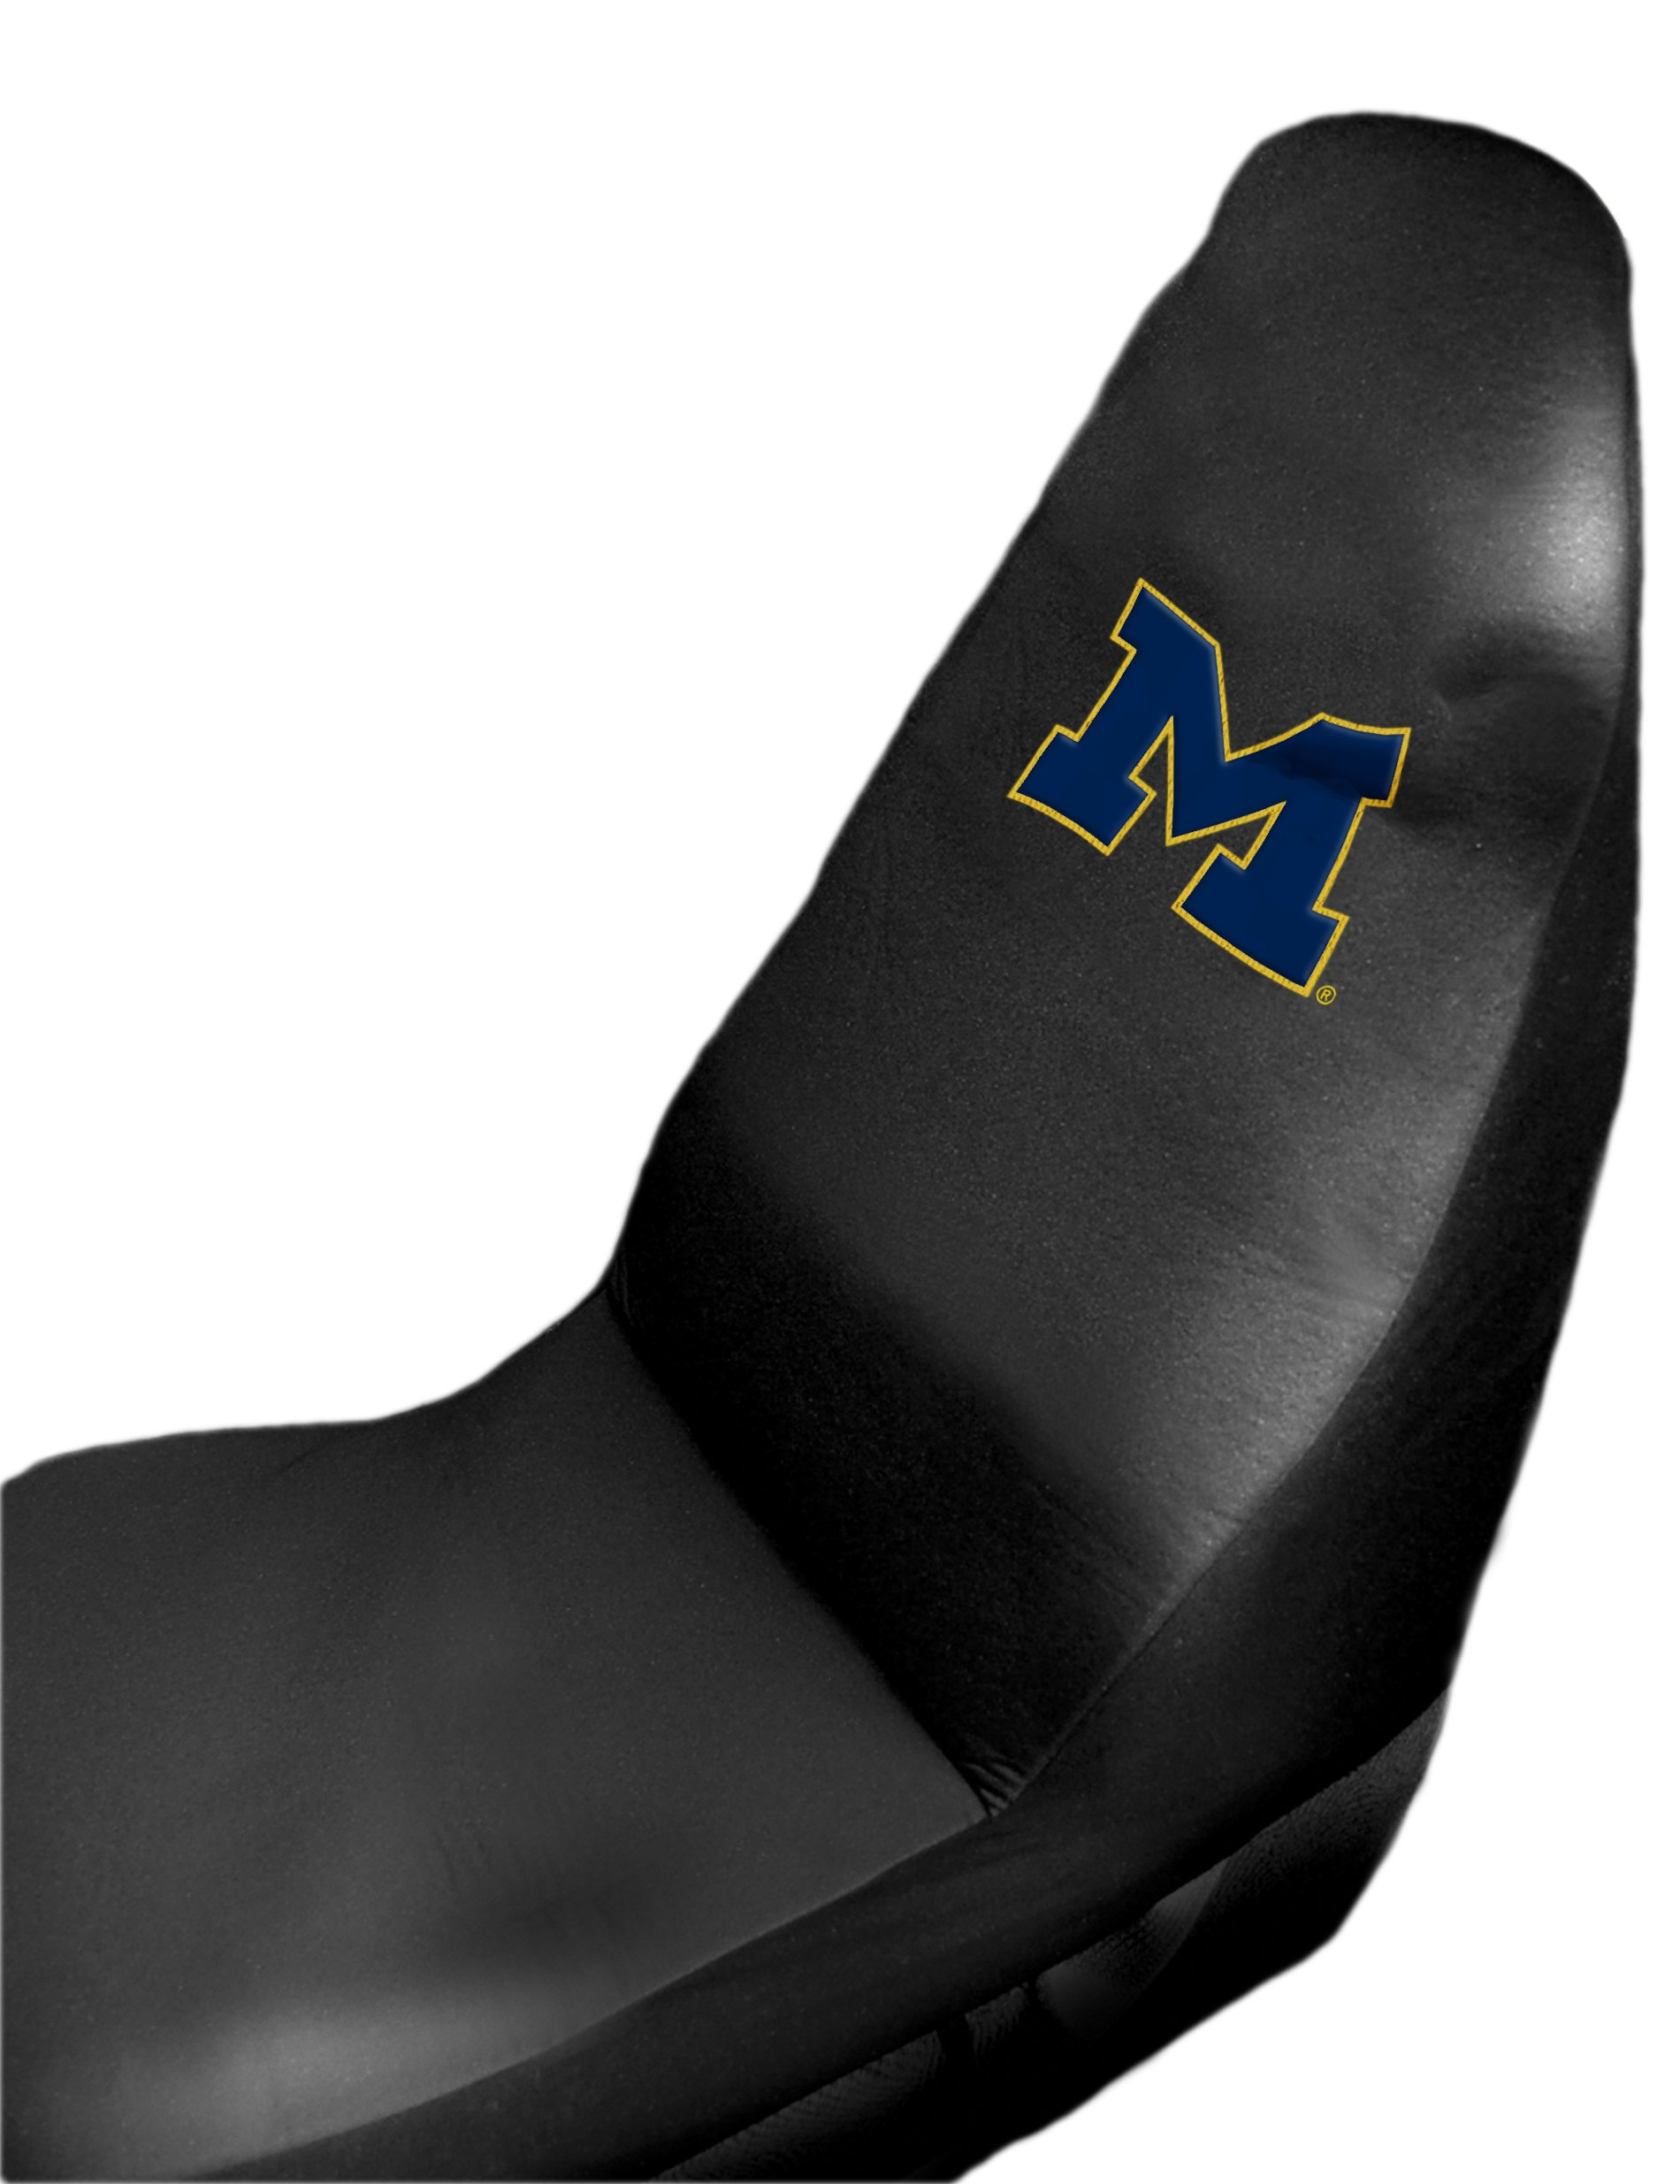 Michigan OFFICIAL Collegiate 51x 21 Car Seat Cover By The Northwest Company